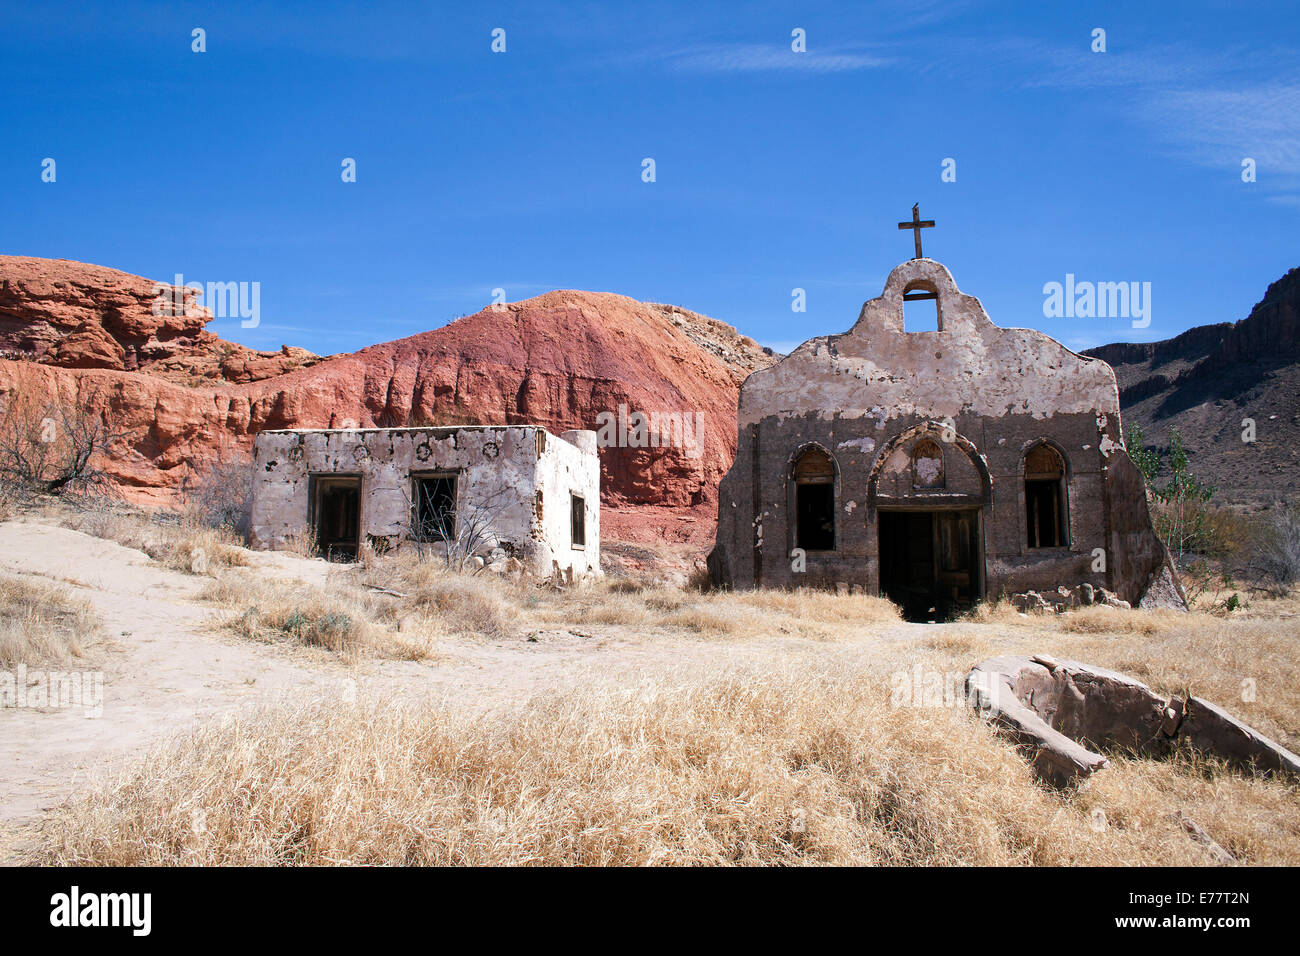 Old movie set for the western film Streets of Laredo in Big Bend National Park Texas - Stock Image